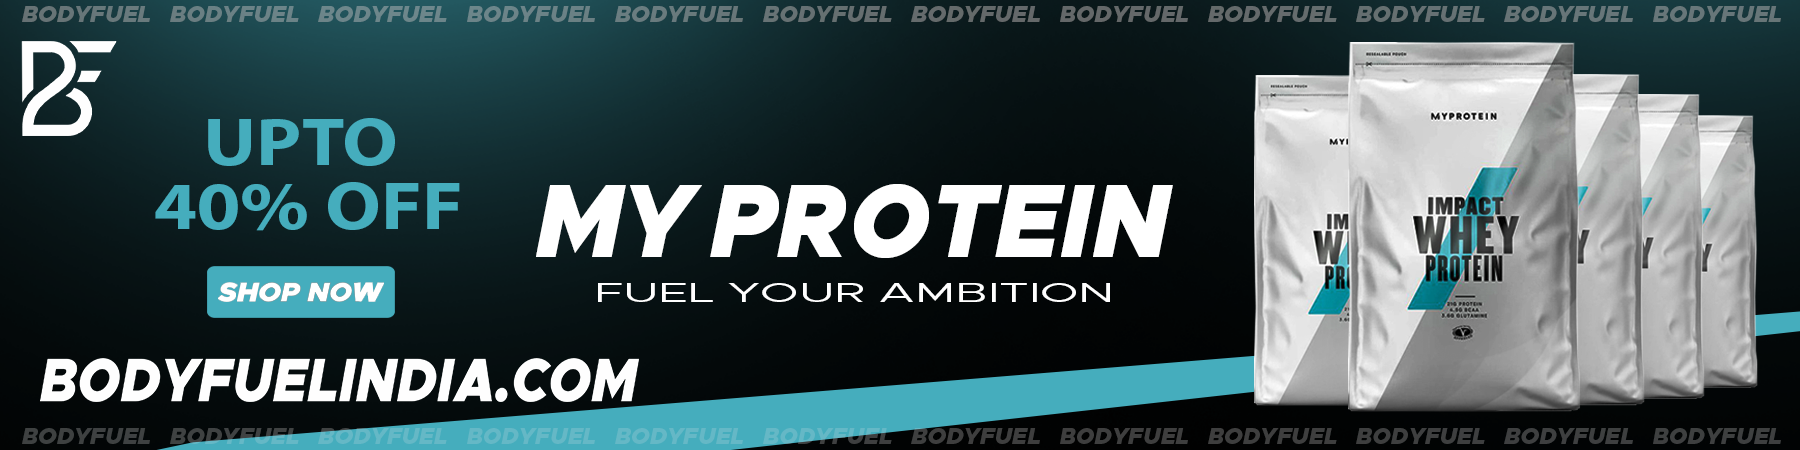 Myprotein, Body Fuel India's no.1 Authentic Online Supplement Store